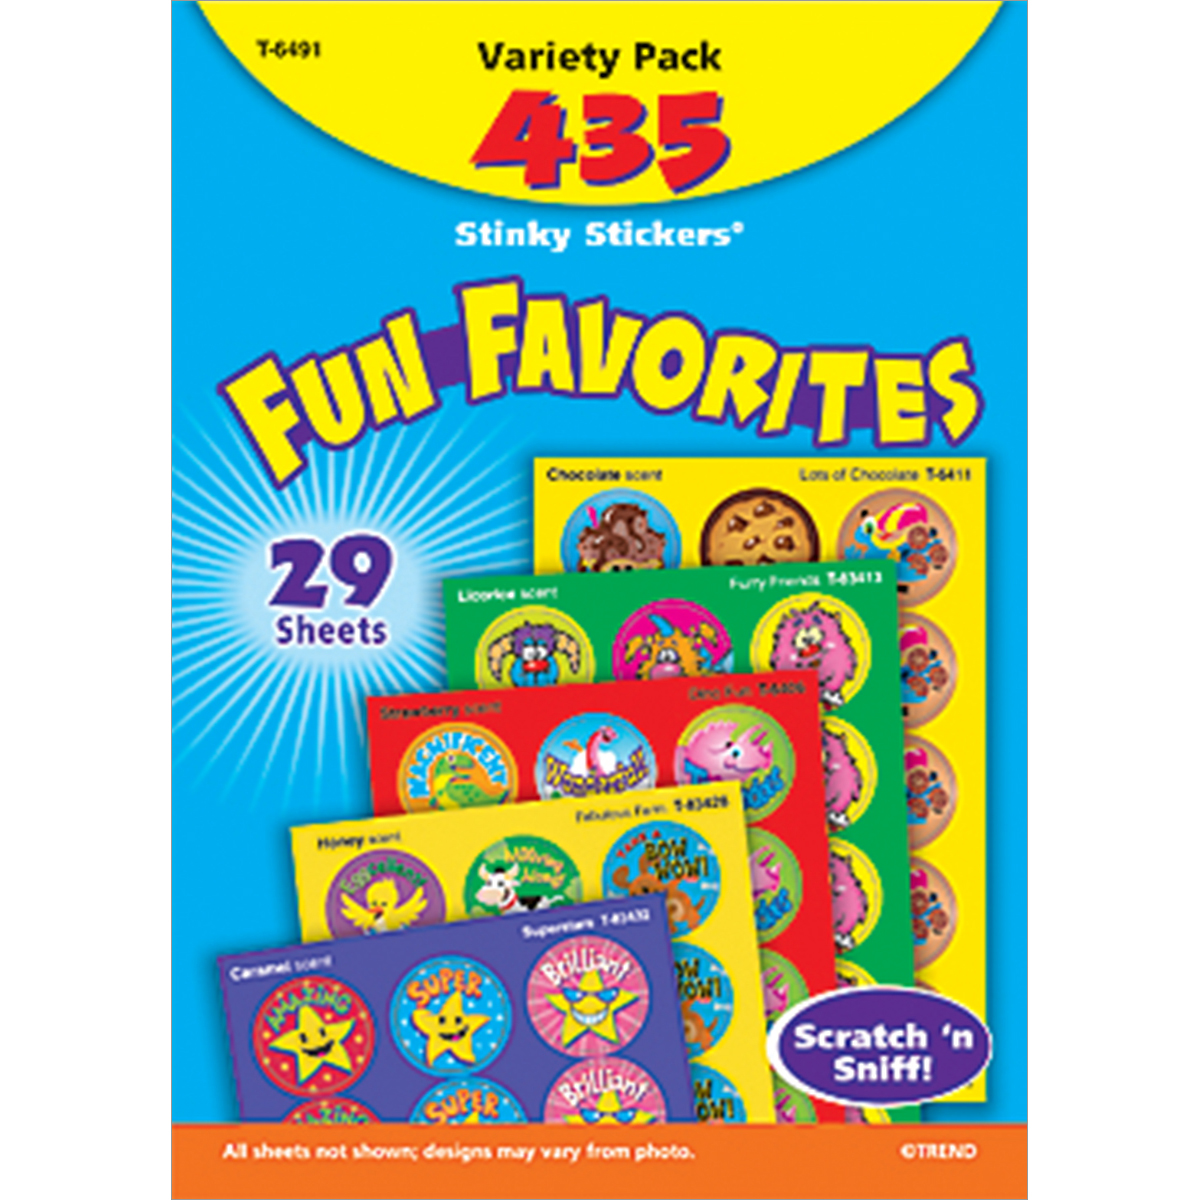 Fun Favorites Stinky Stickers Variety Pack